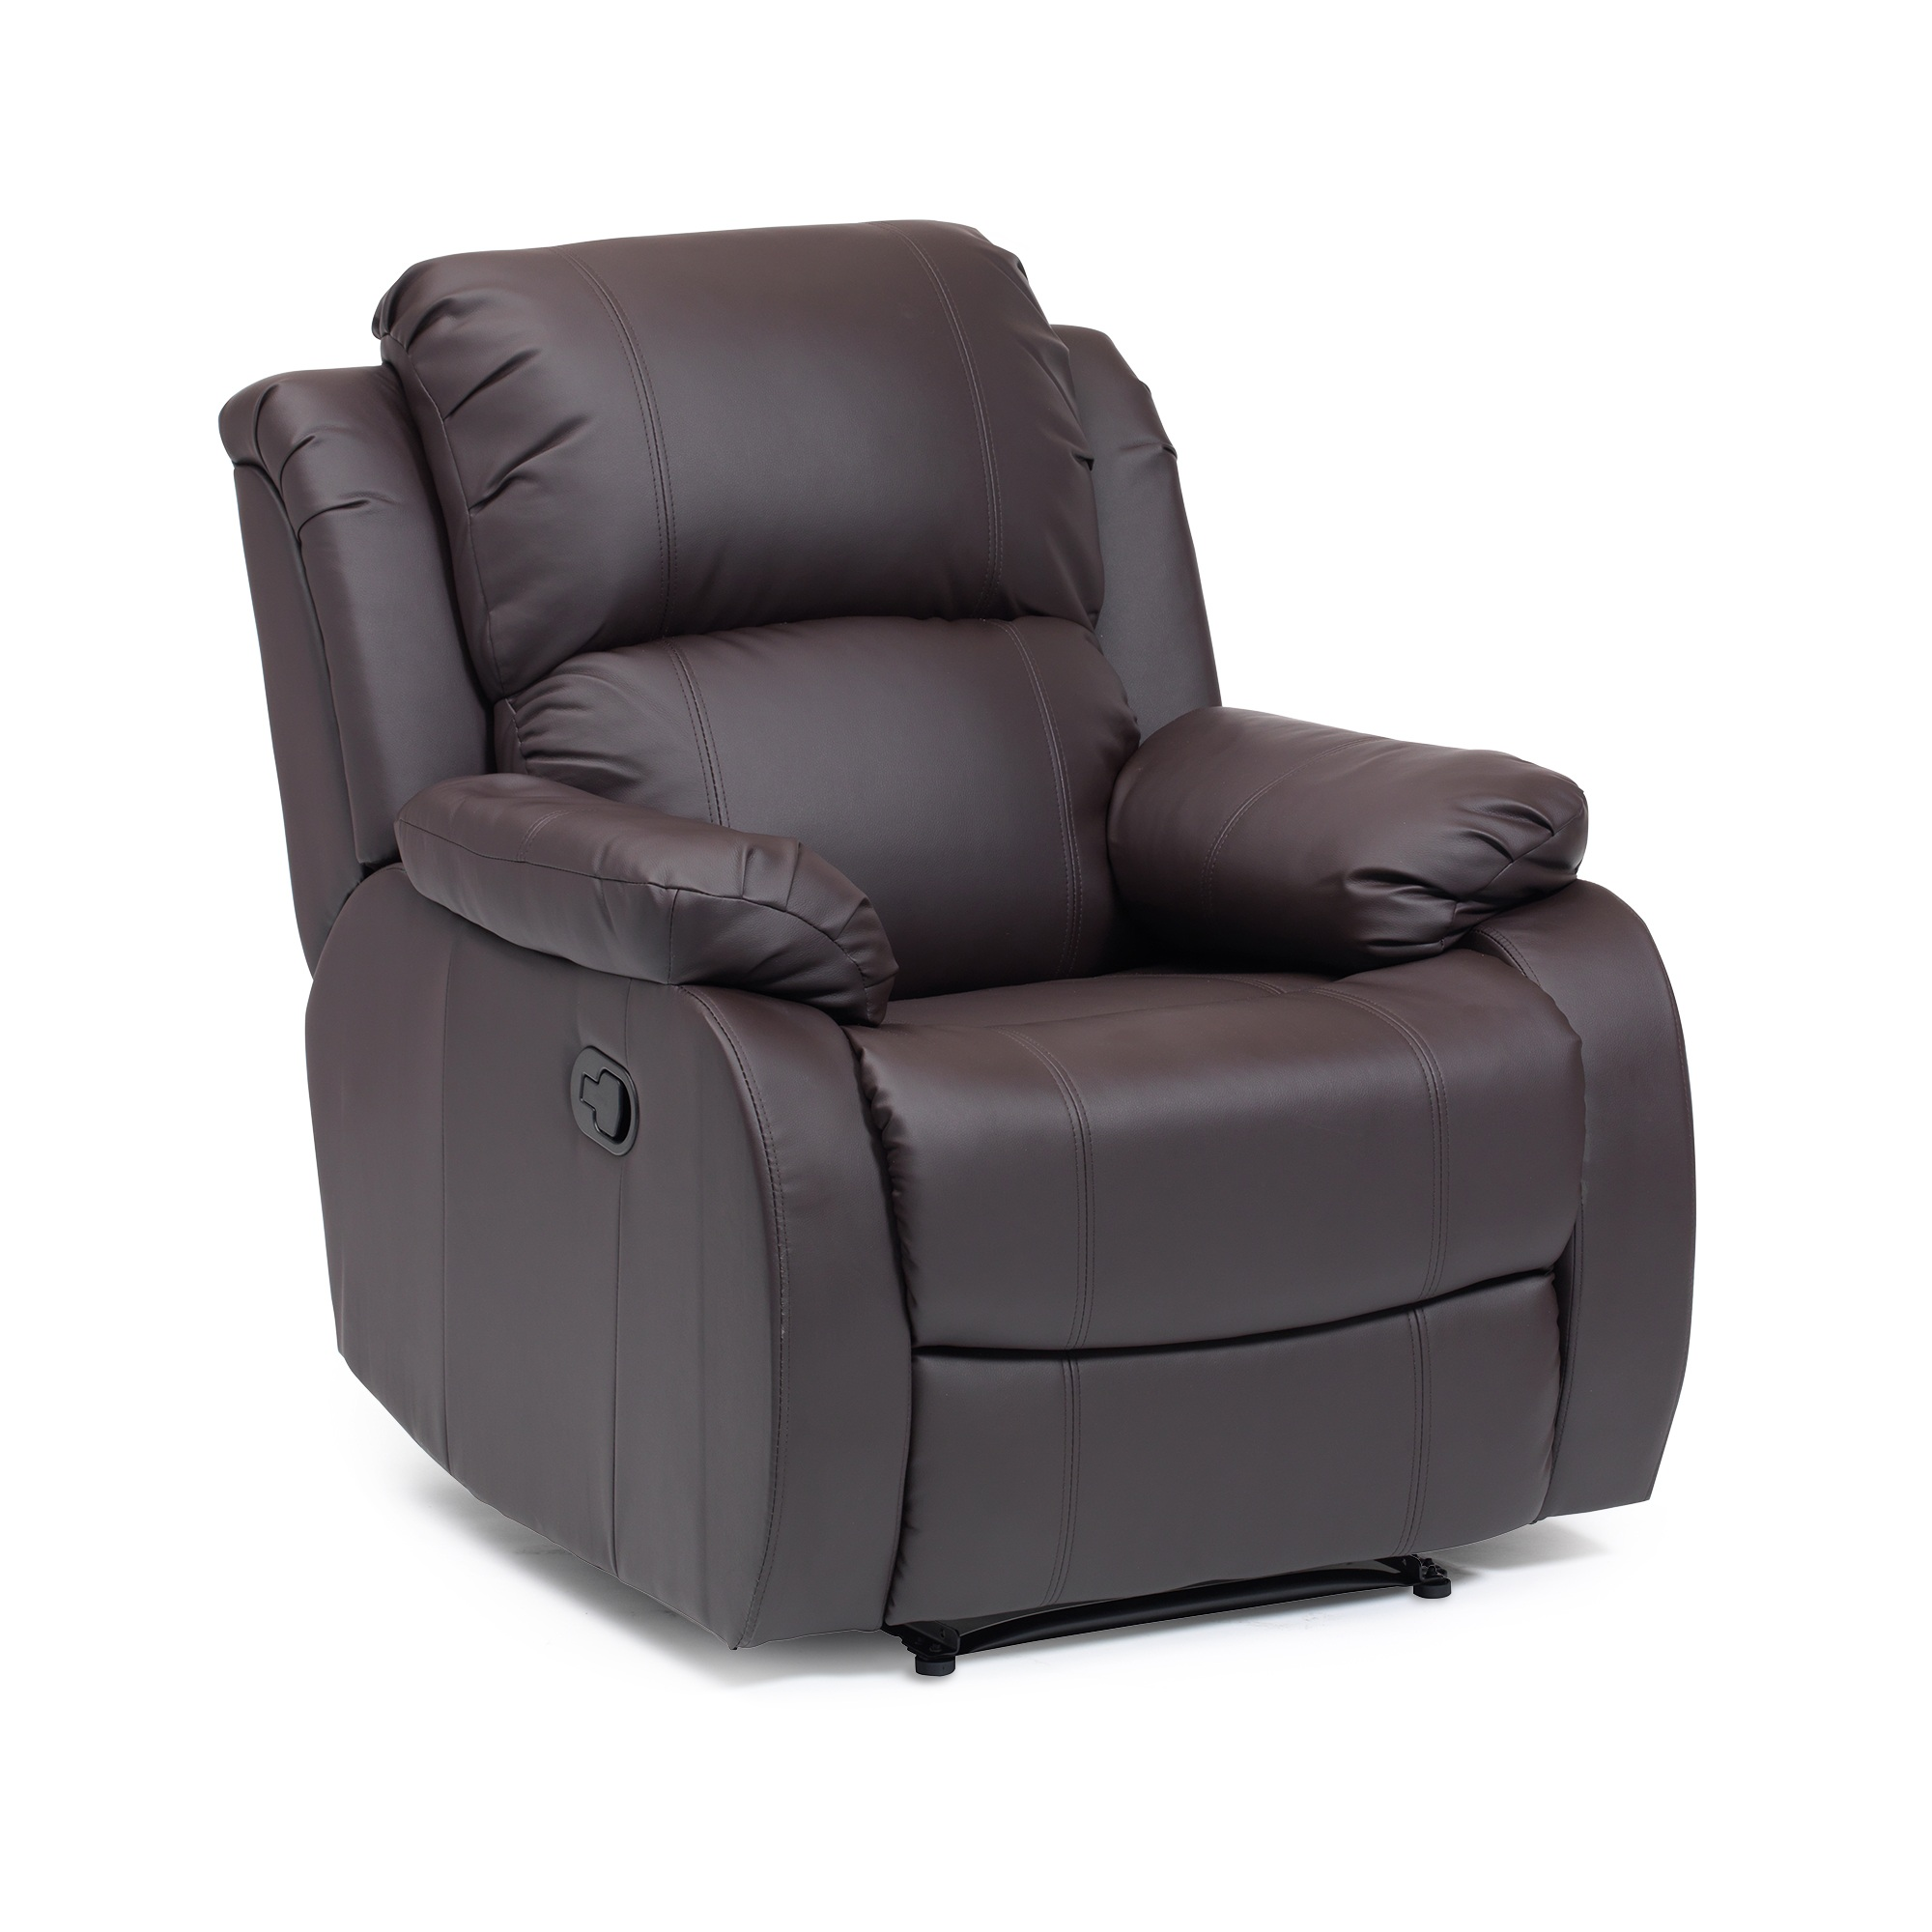 Terrific Details About Drive Clifton Bonded Leather Manual Recliner Chair Rise Armchair Mobility Aid Alphanode Cool Chair Designs And Ideas Alphanodeonline